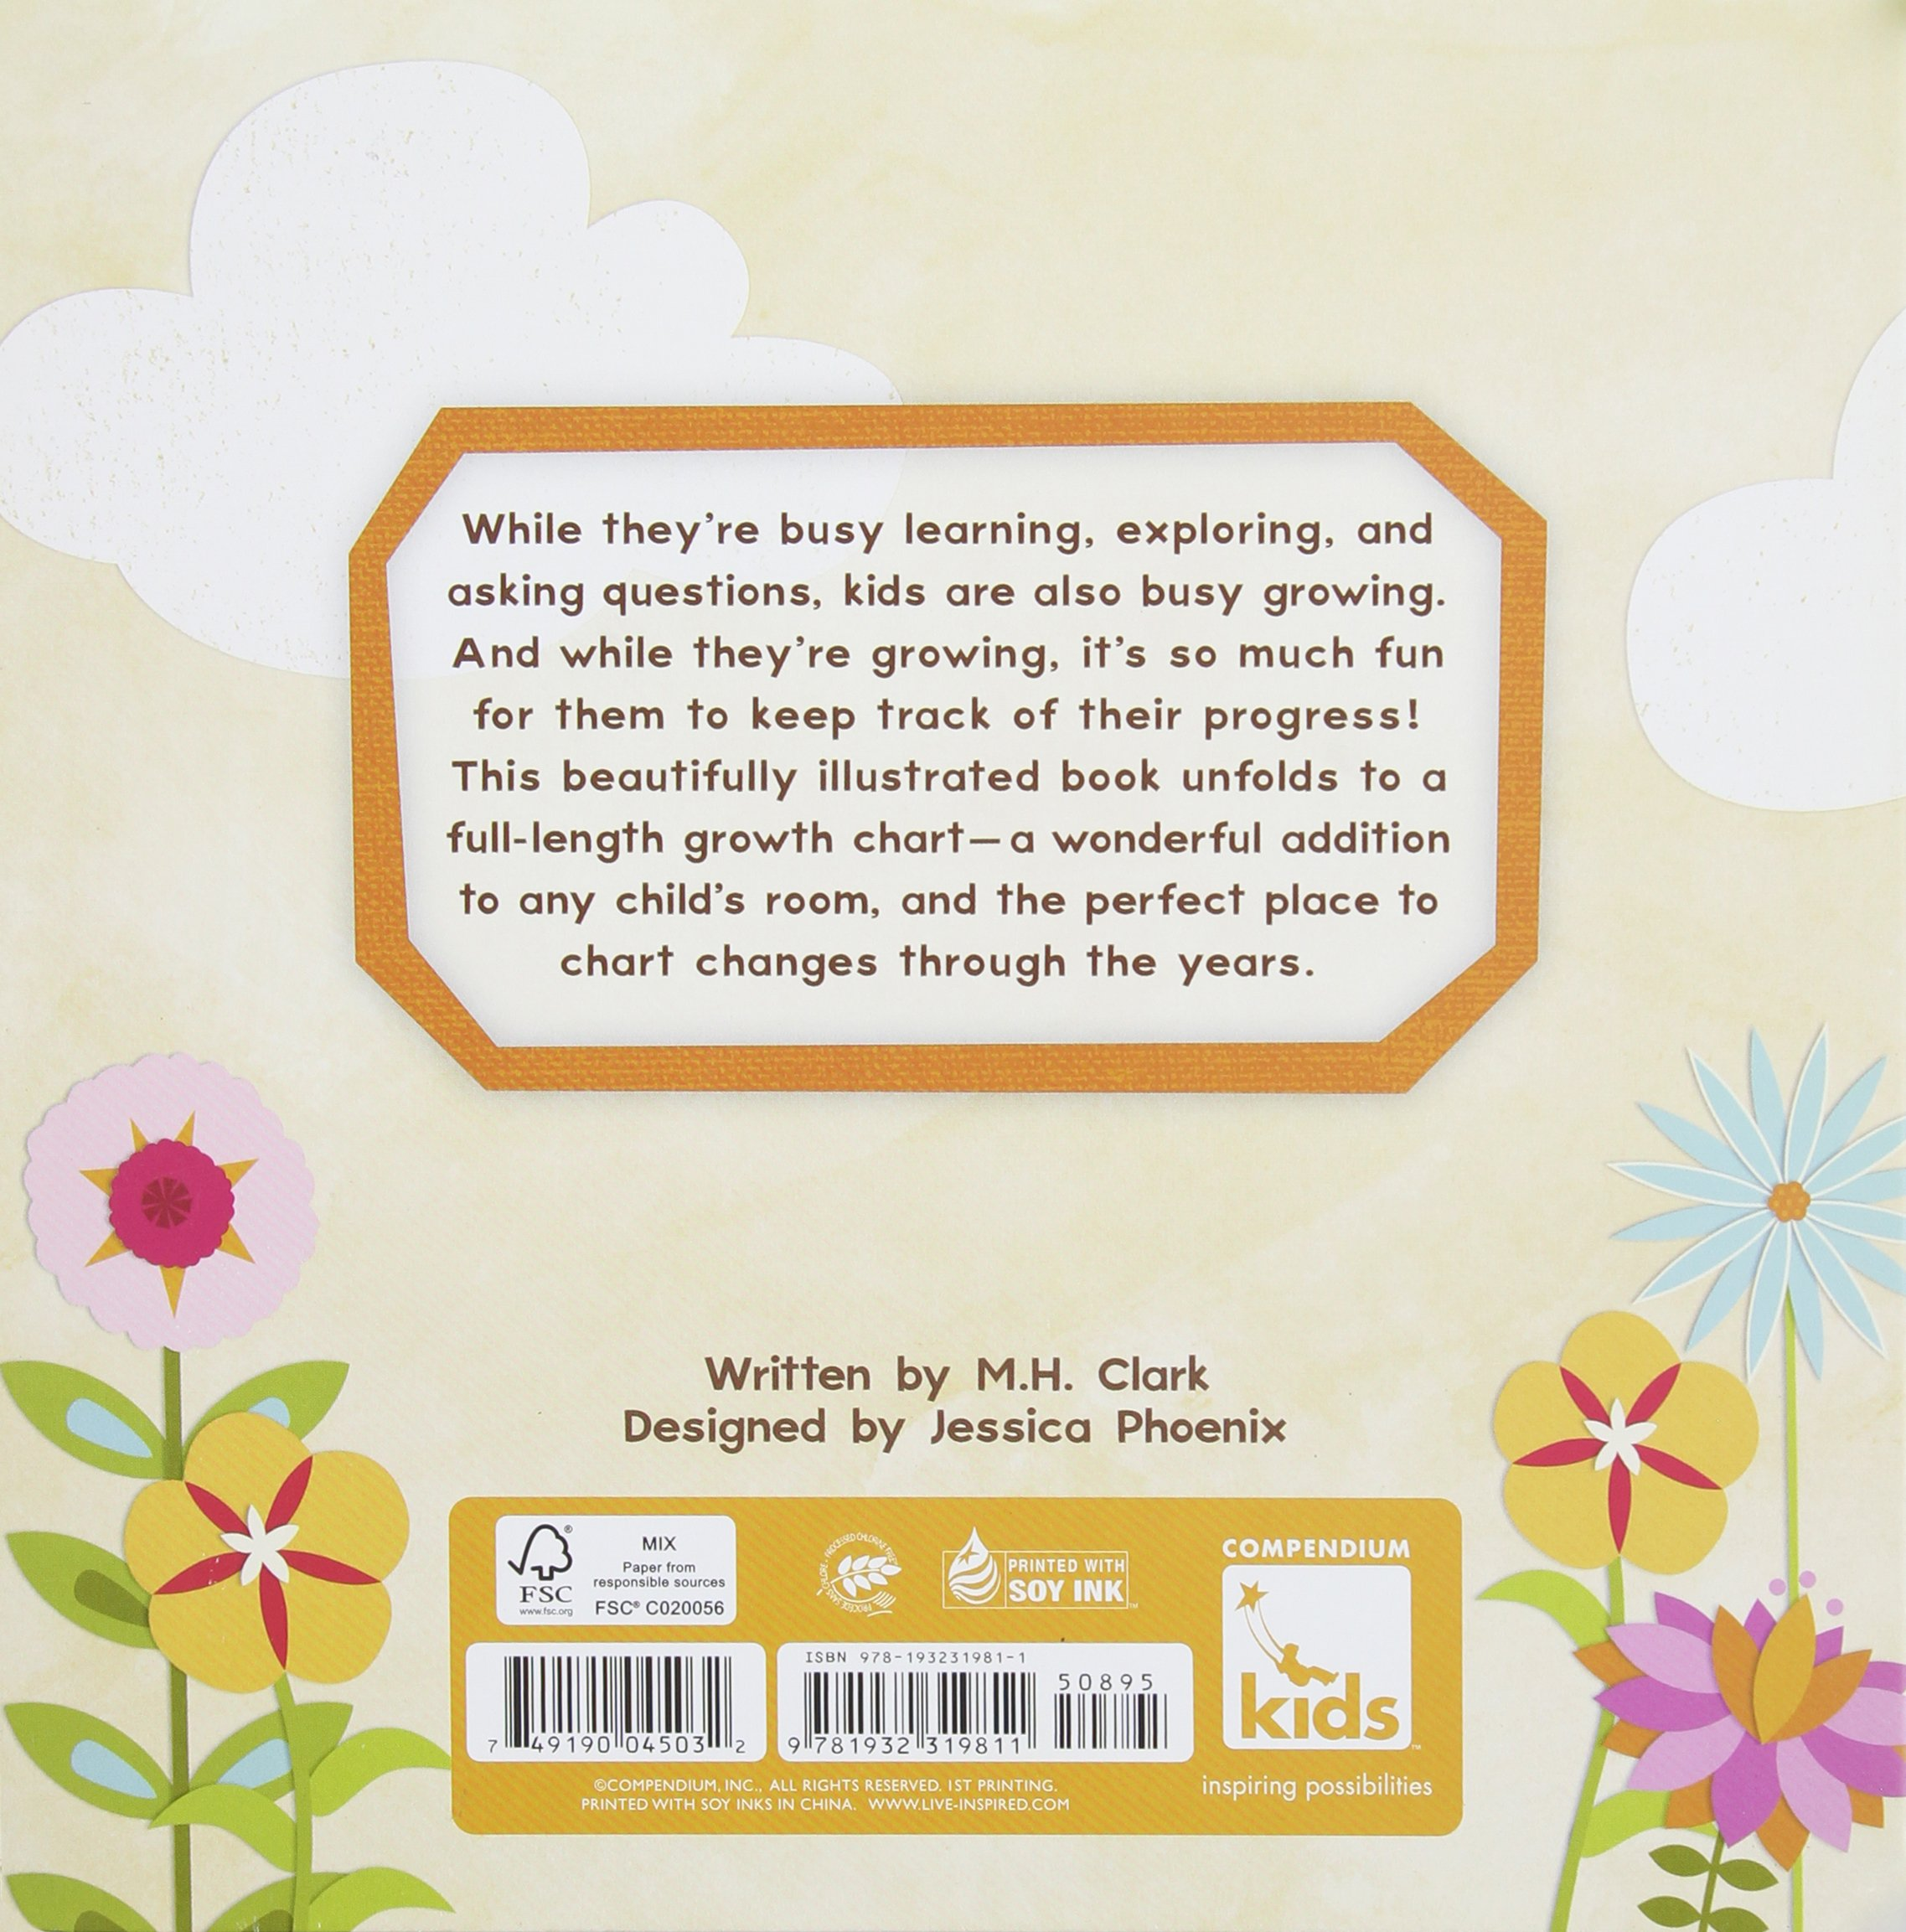 I can inspiring childs board book and growth chart mh clark i can inspiring childs board book and growth chart mh clark jessica phoenix 9781932319811 amazon books nvjuhfo Choice Image